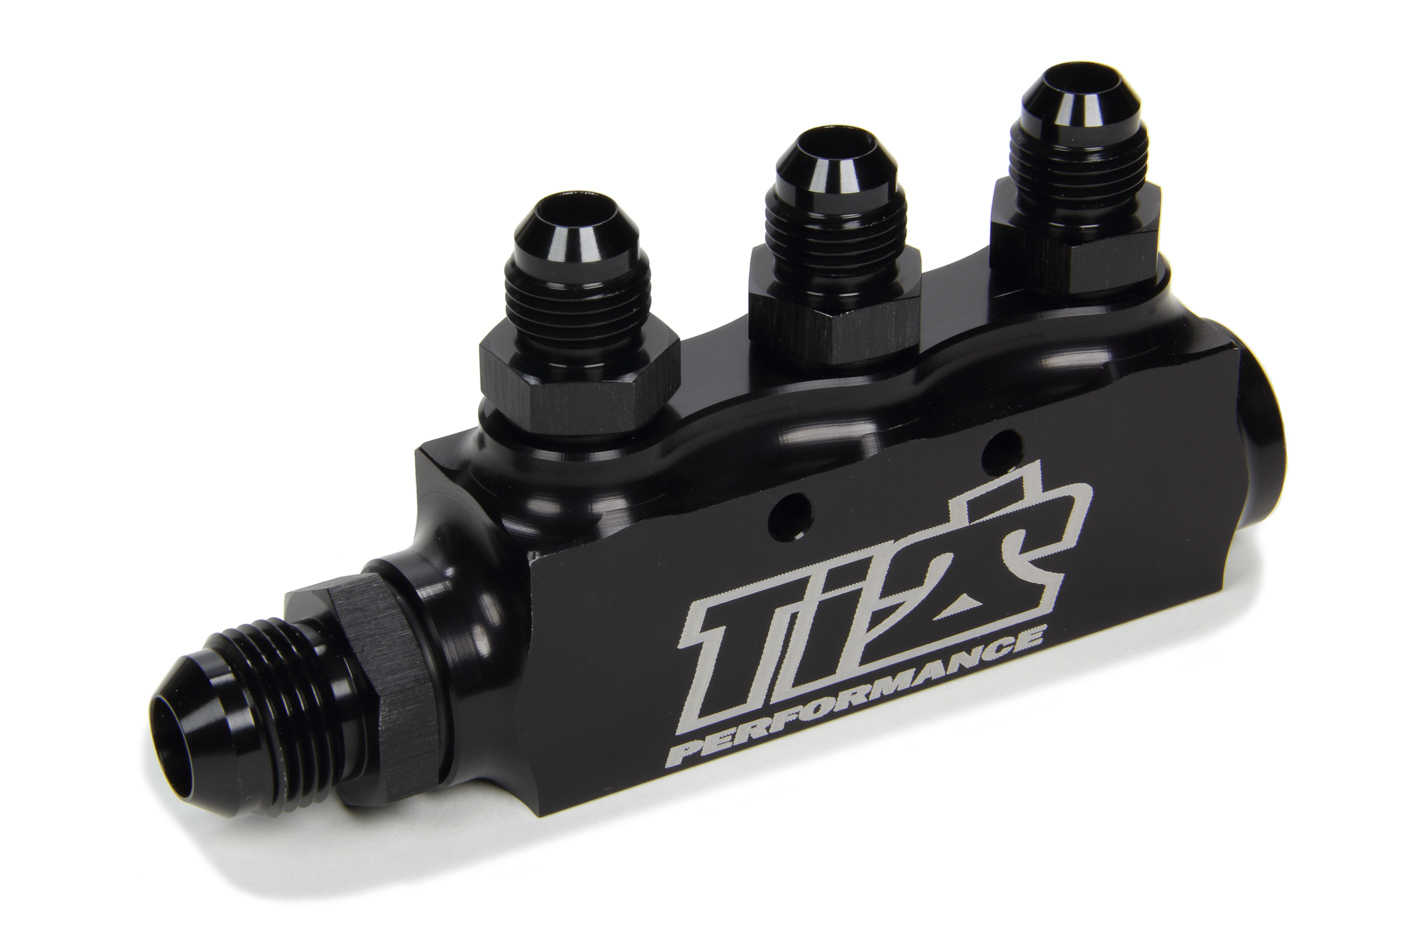 Ti22 Performance 5500 Fuel Block, Three 6 AN Female Ports, One 8 AN Female Port, Male Adapter Fittings Included, One 8 AN Male Fitting, Aluminum, Black Anodized, Each